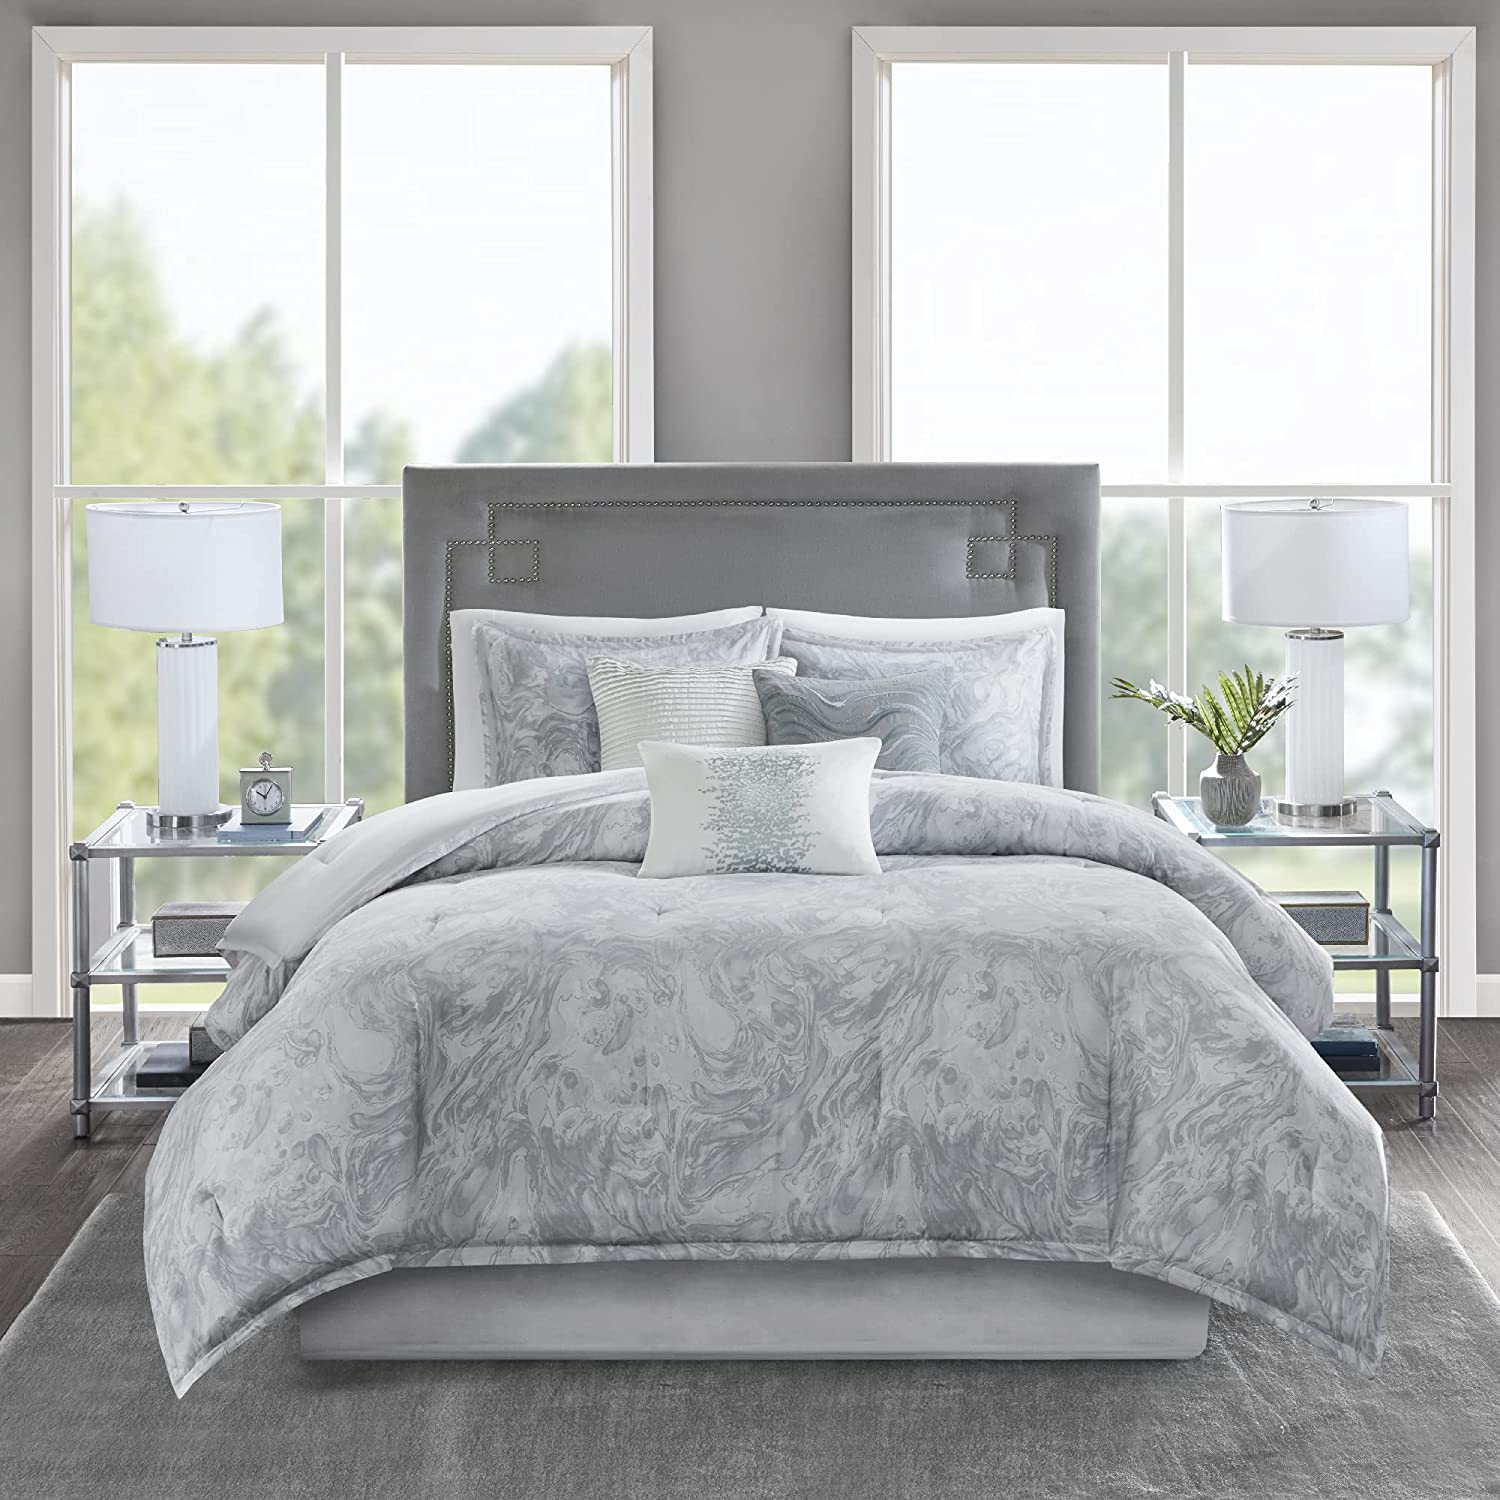 Max 81% OFF Madison Park Cozy Cotton Comforter Desig Set-Emory Marble Modern Excellence